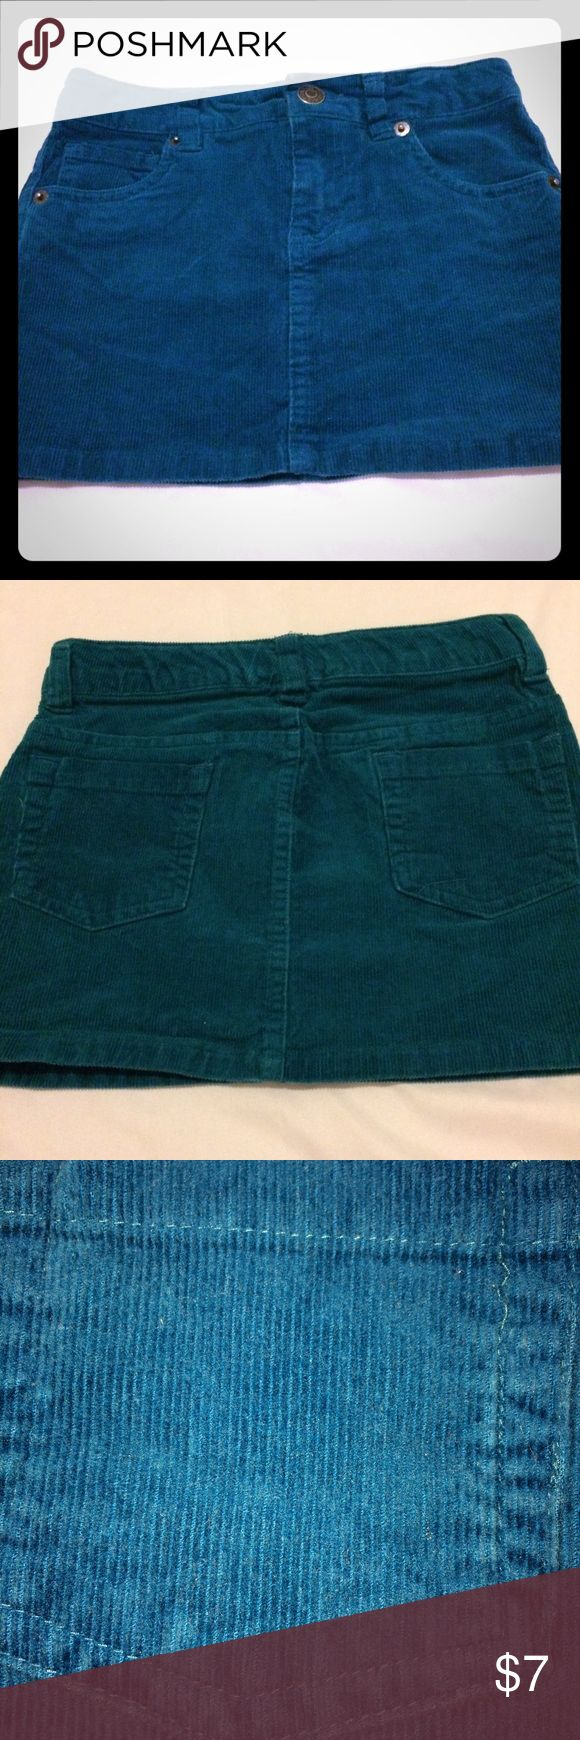 Girls Turquoise Jean Skirt Please see photos Bottoms Skirts